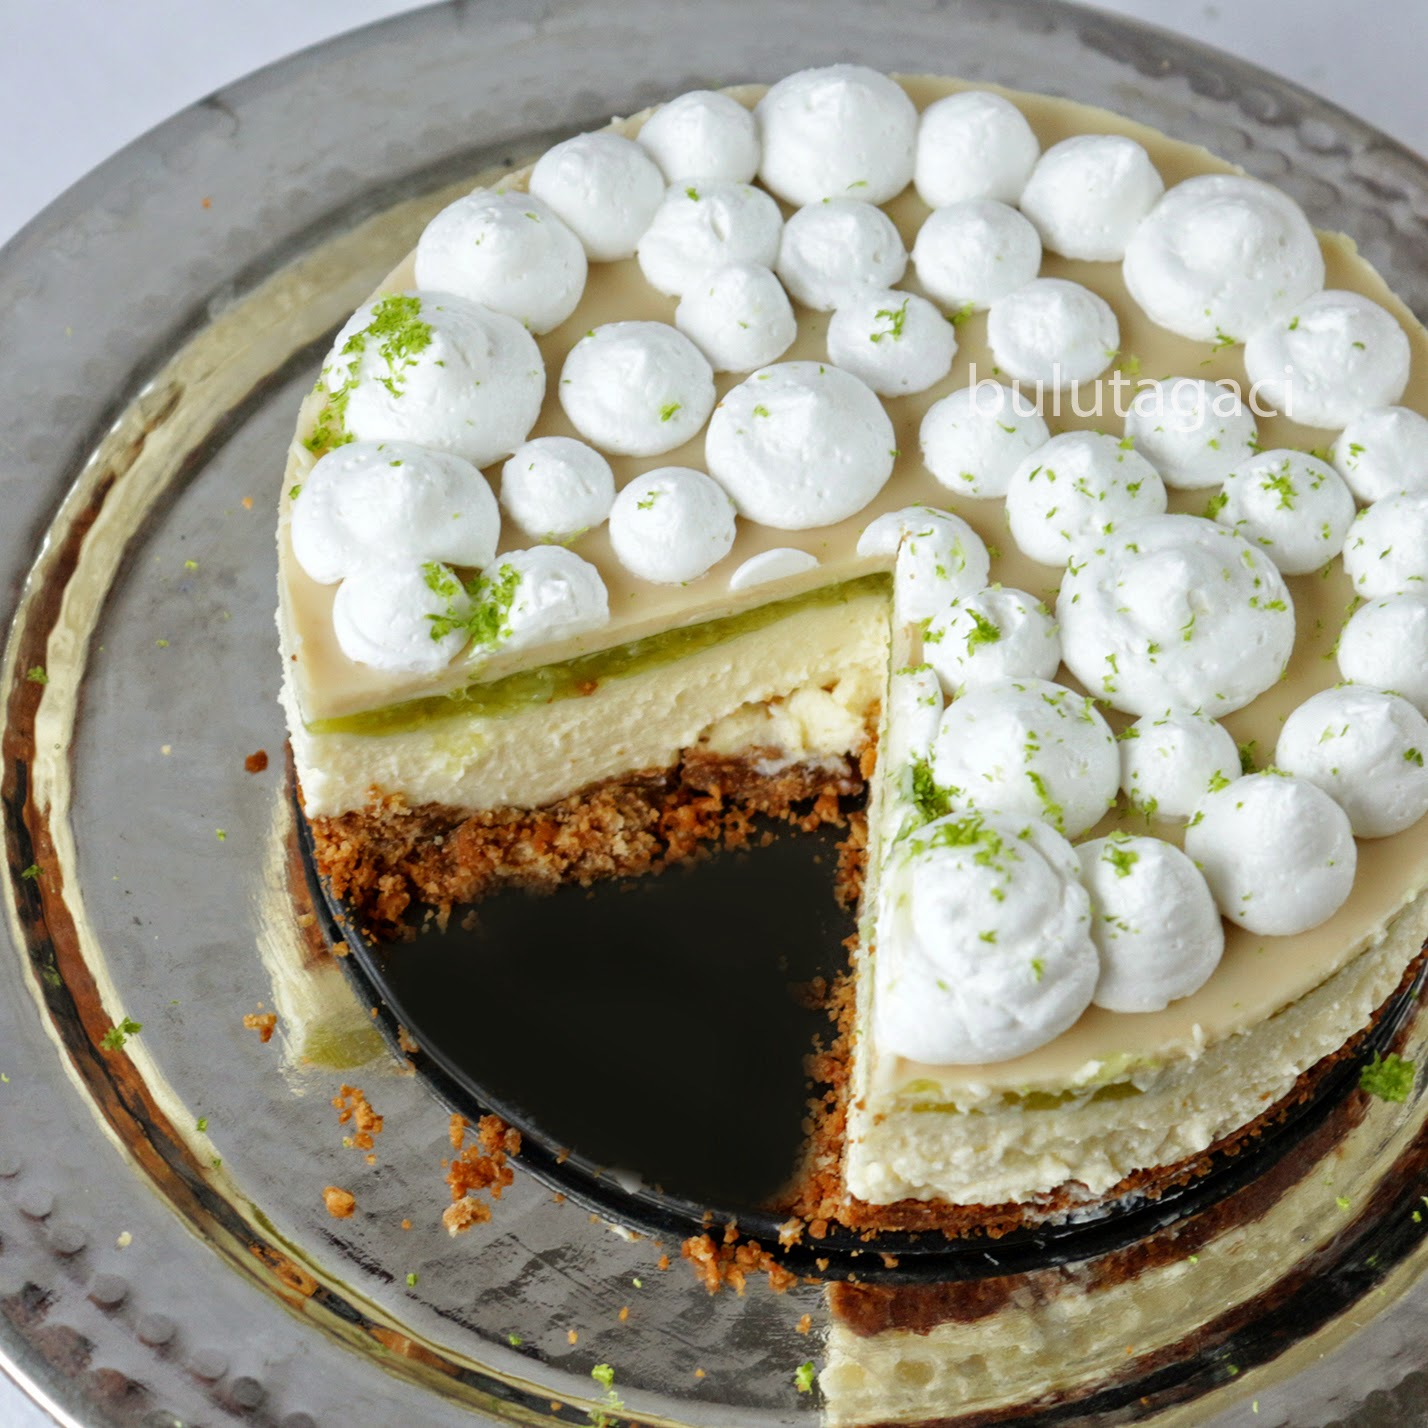 Beyaz Çikolata ve Misket Limonlu Cheesecake / No bake White Chocolate and Lime Cheesecake